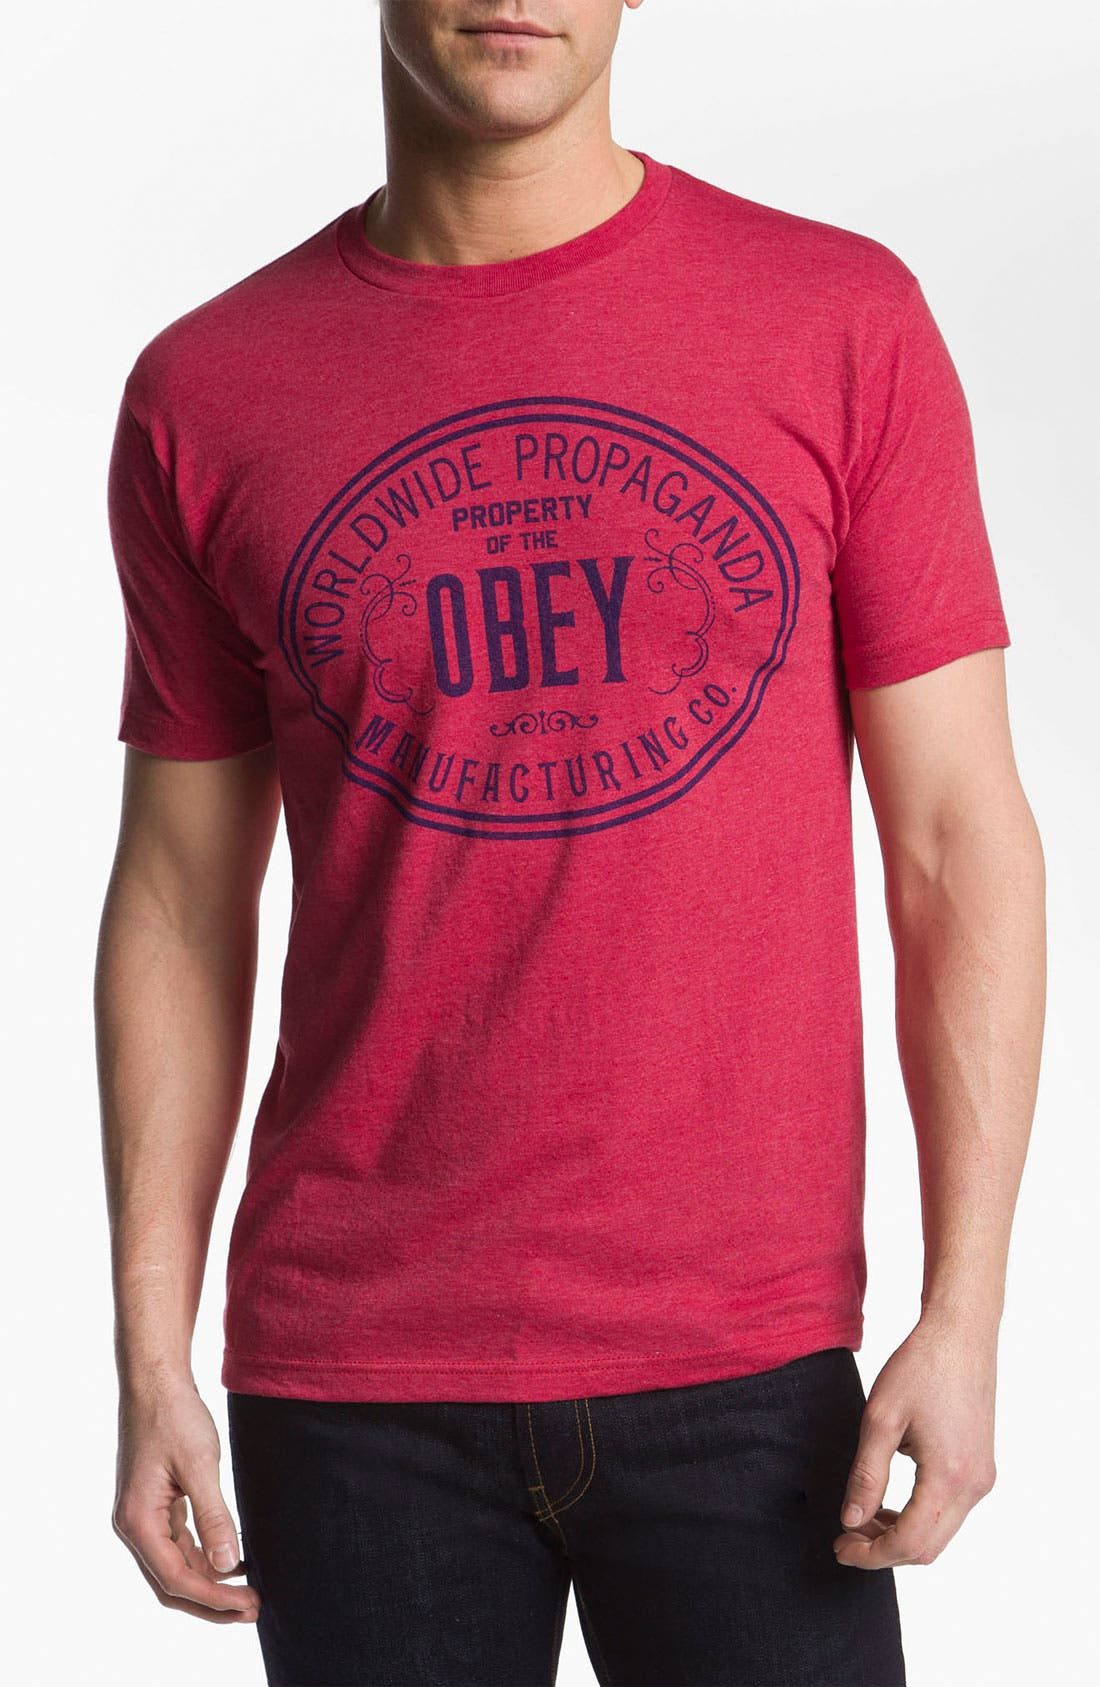 Alternate Image 1 Selected - Obey 'Property of Obey' T-Shirt